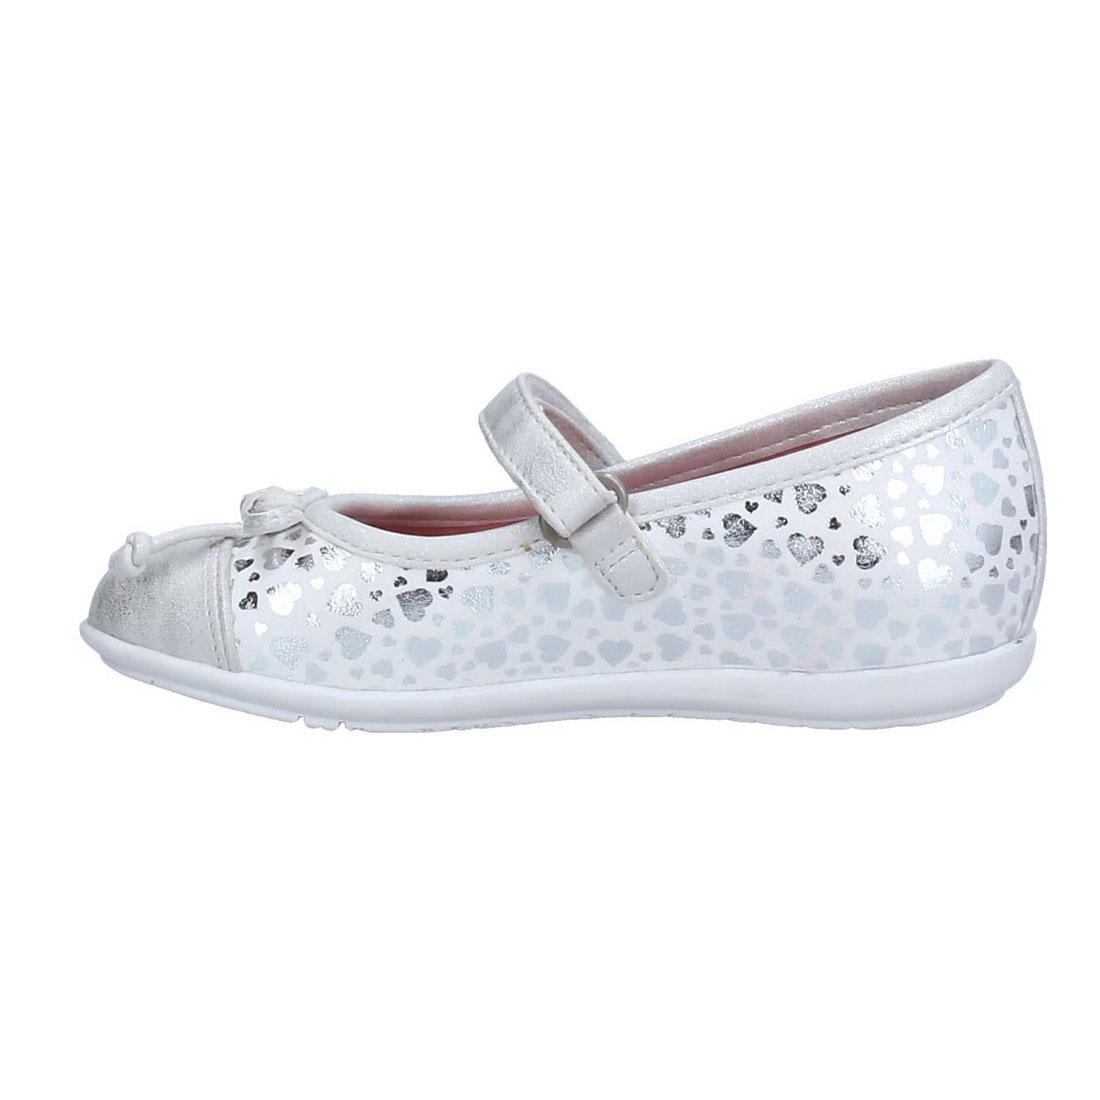 Silver glitter upper with bow girl dress shoes flat shoesYH0009